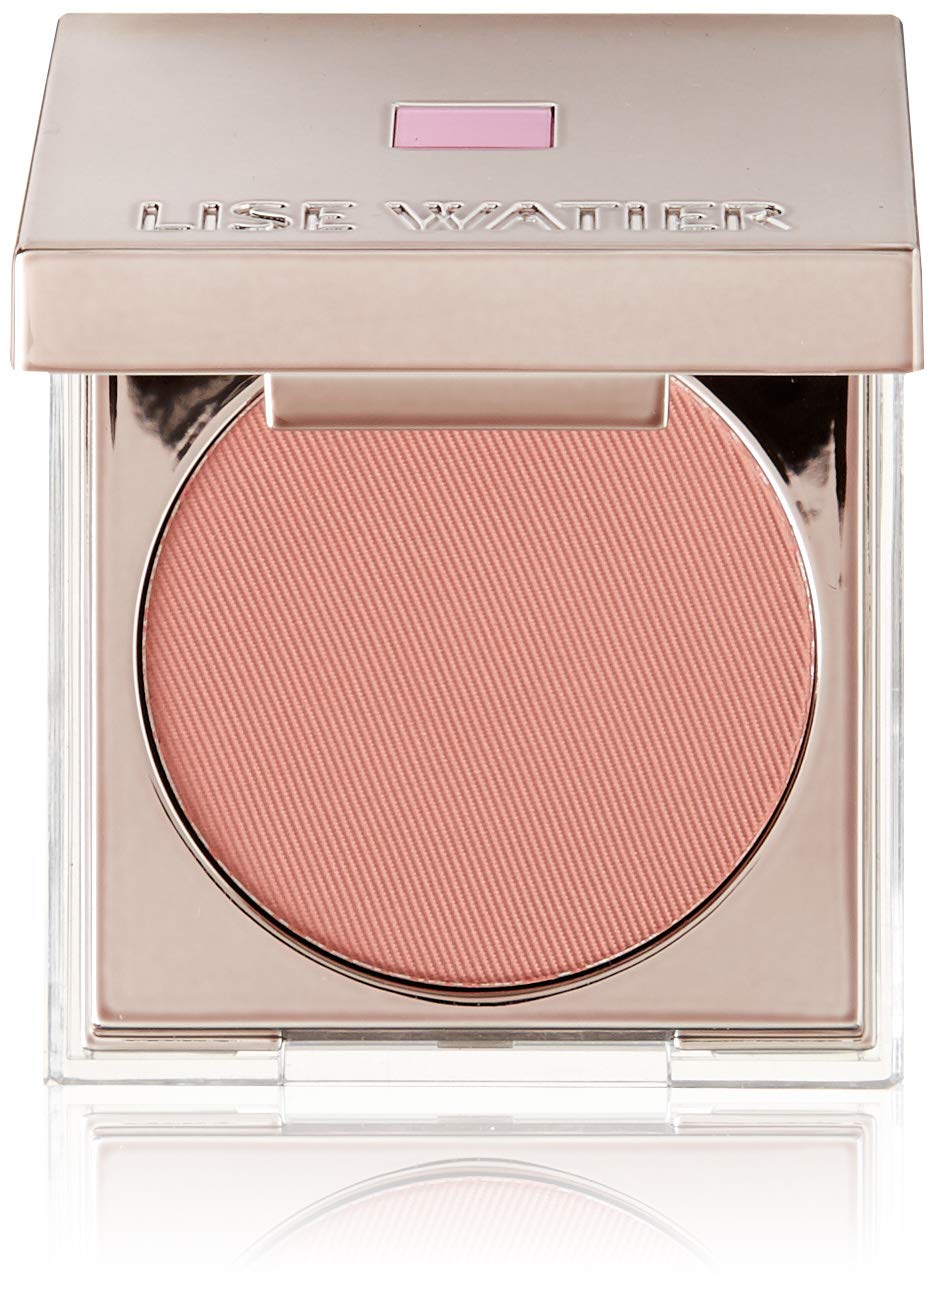 Lise Watier Blush-On Powder, Moka, 0.14 oz